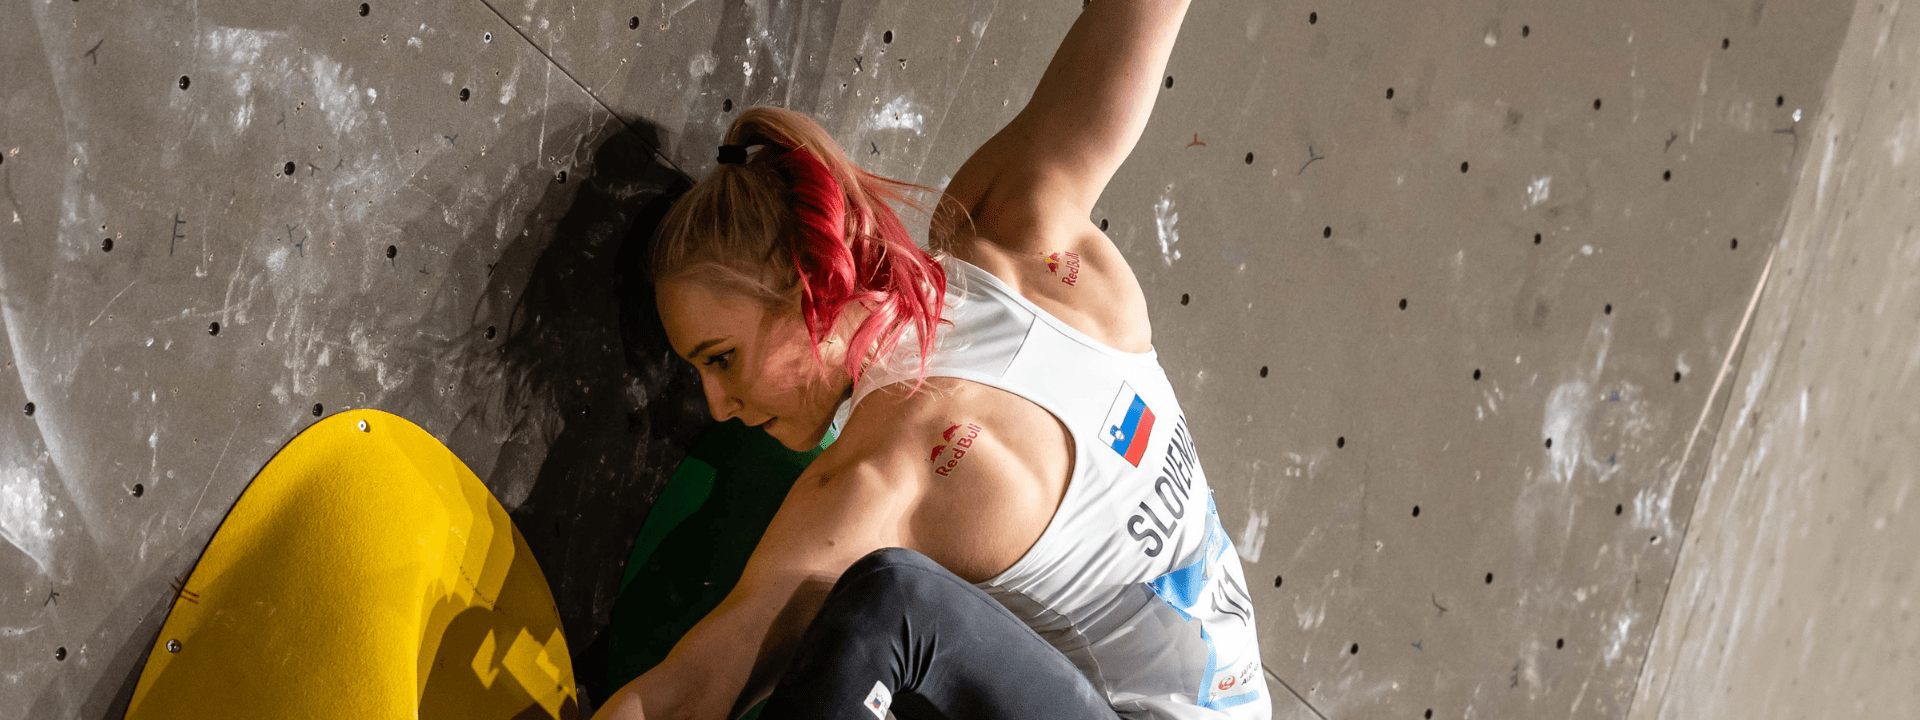 GARNBRET AND NOGUCHI TOP THE WOMEN'S QUALIFICATION ROUND